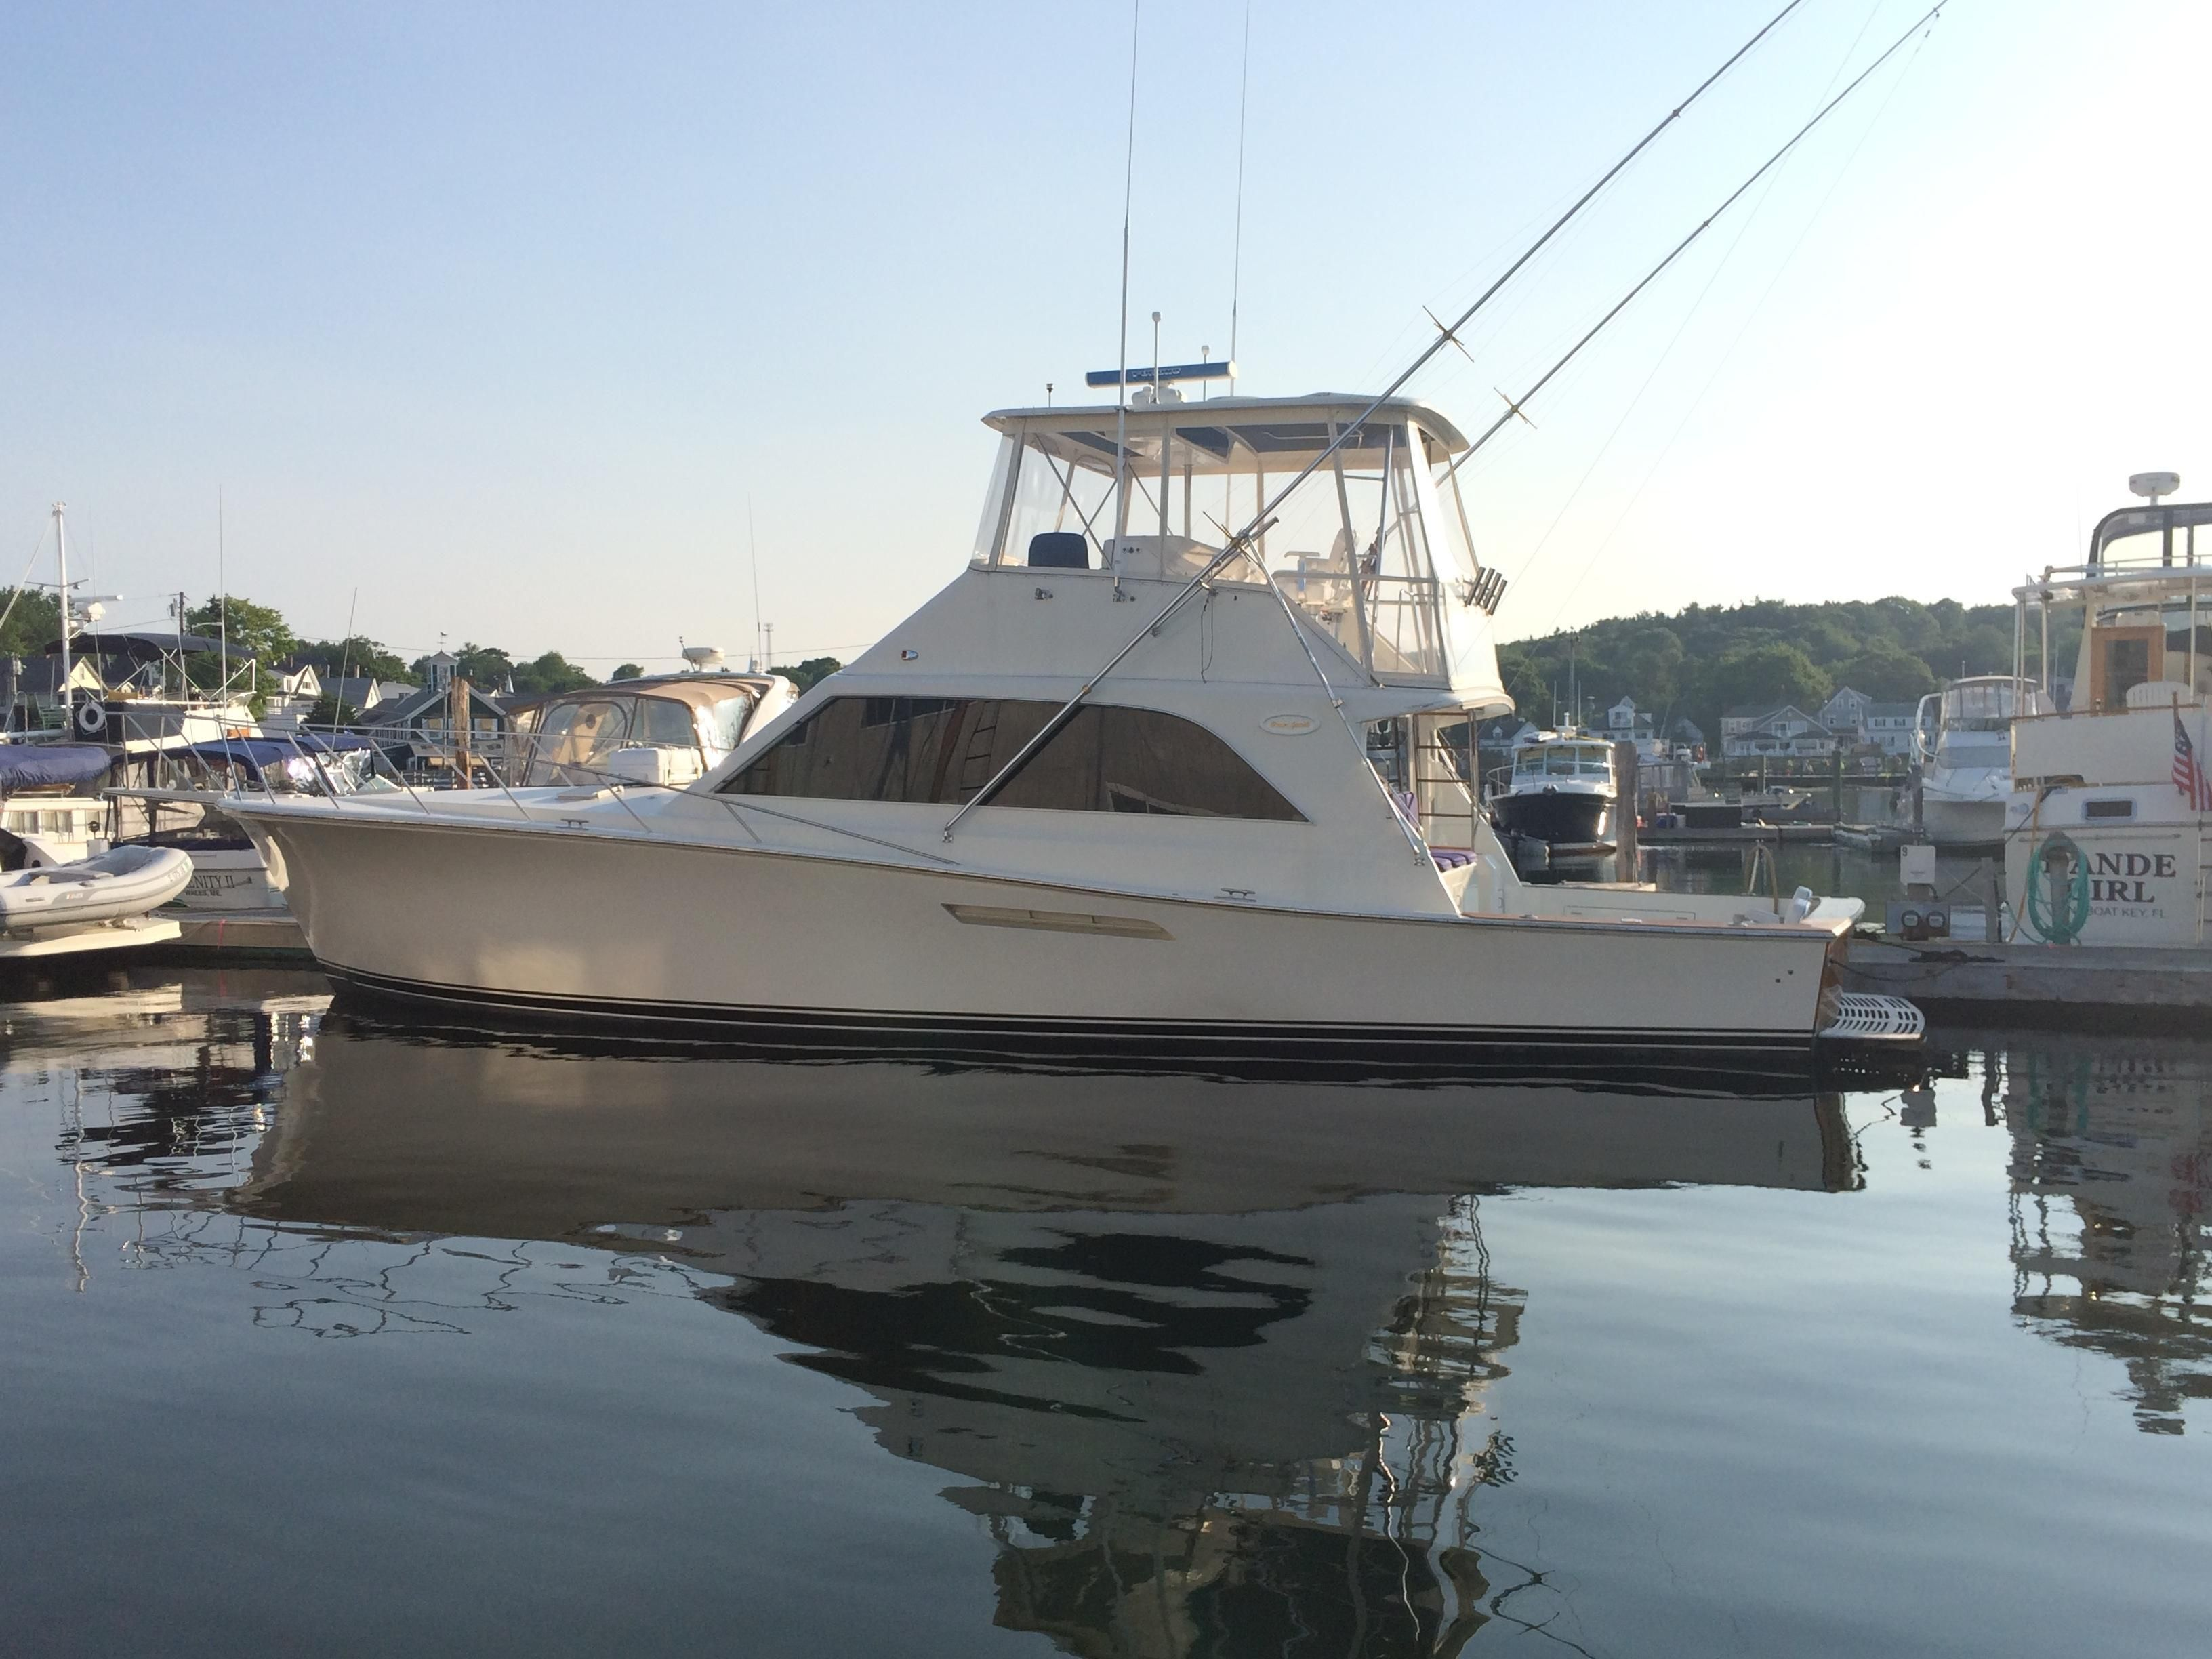 1989 ocean yachts super sport power boat for sale www for Boat motor repair near me